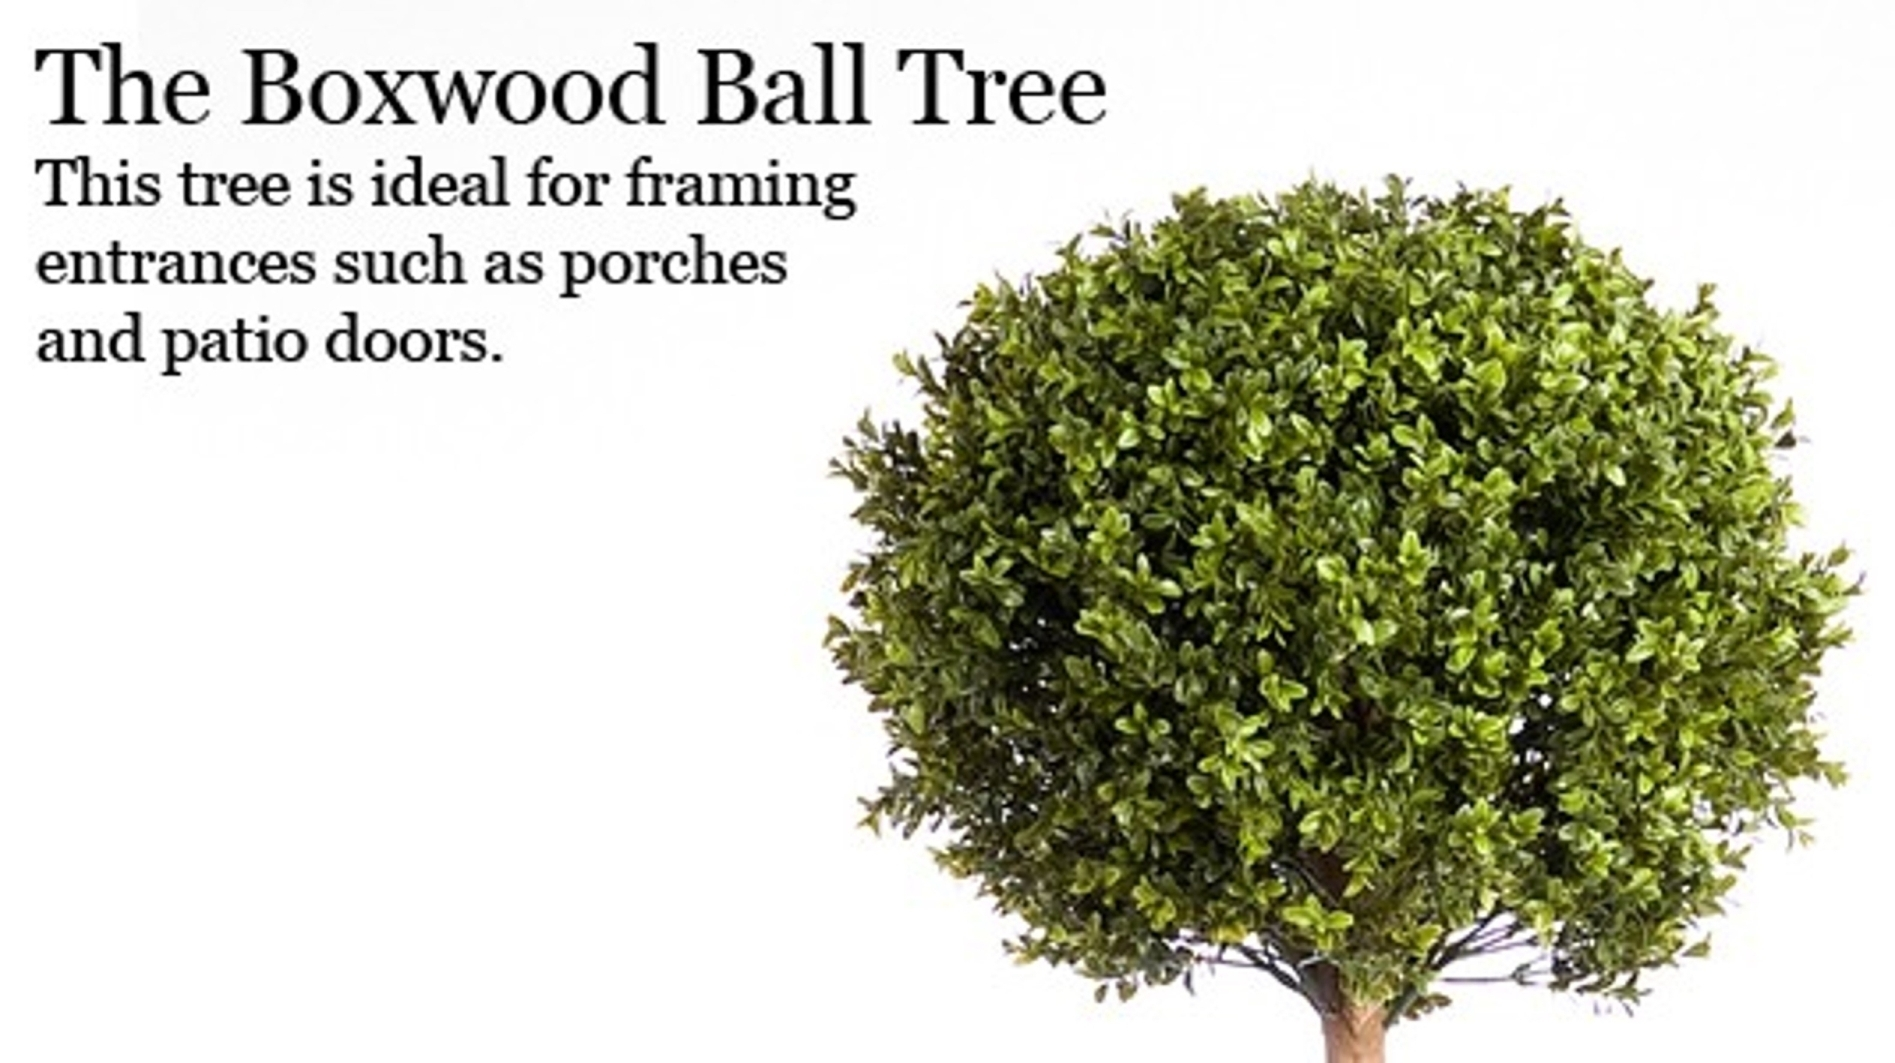 The Boxwood Ball Tree. This tree is ideal for framing entrances such as porches and patio doors.